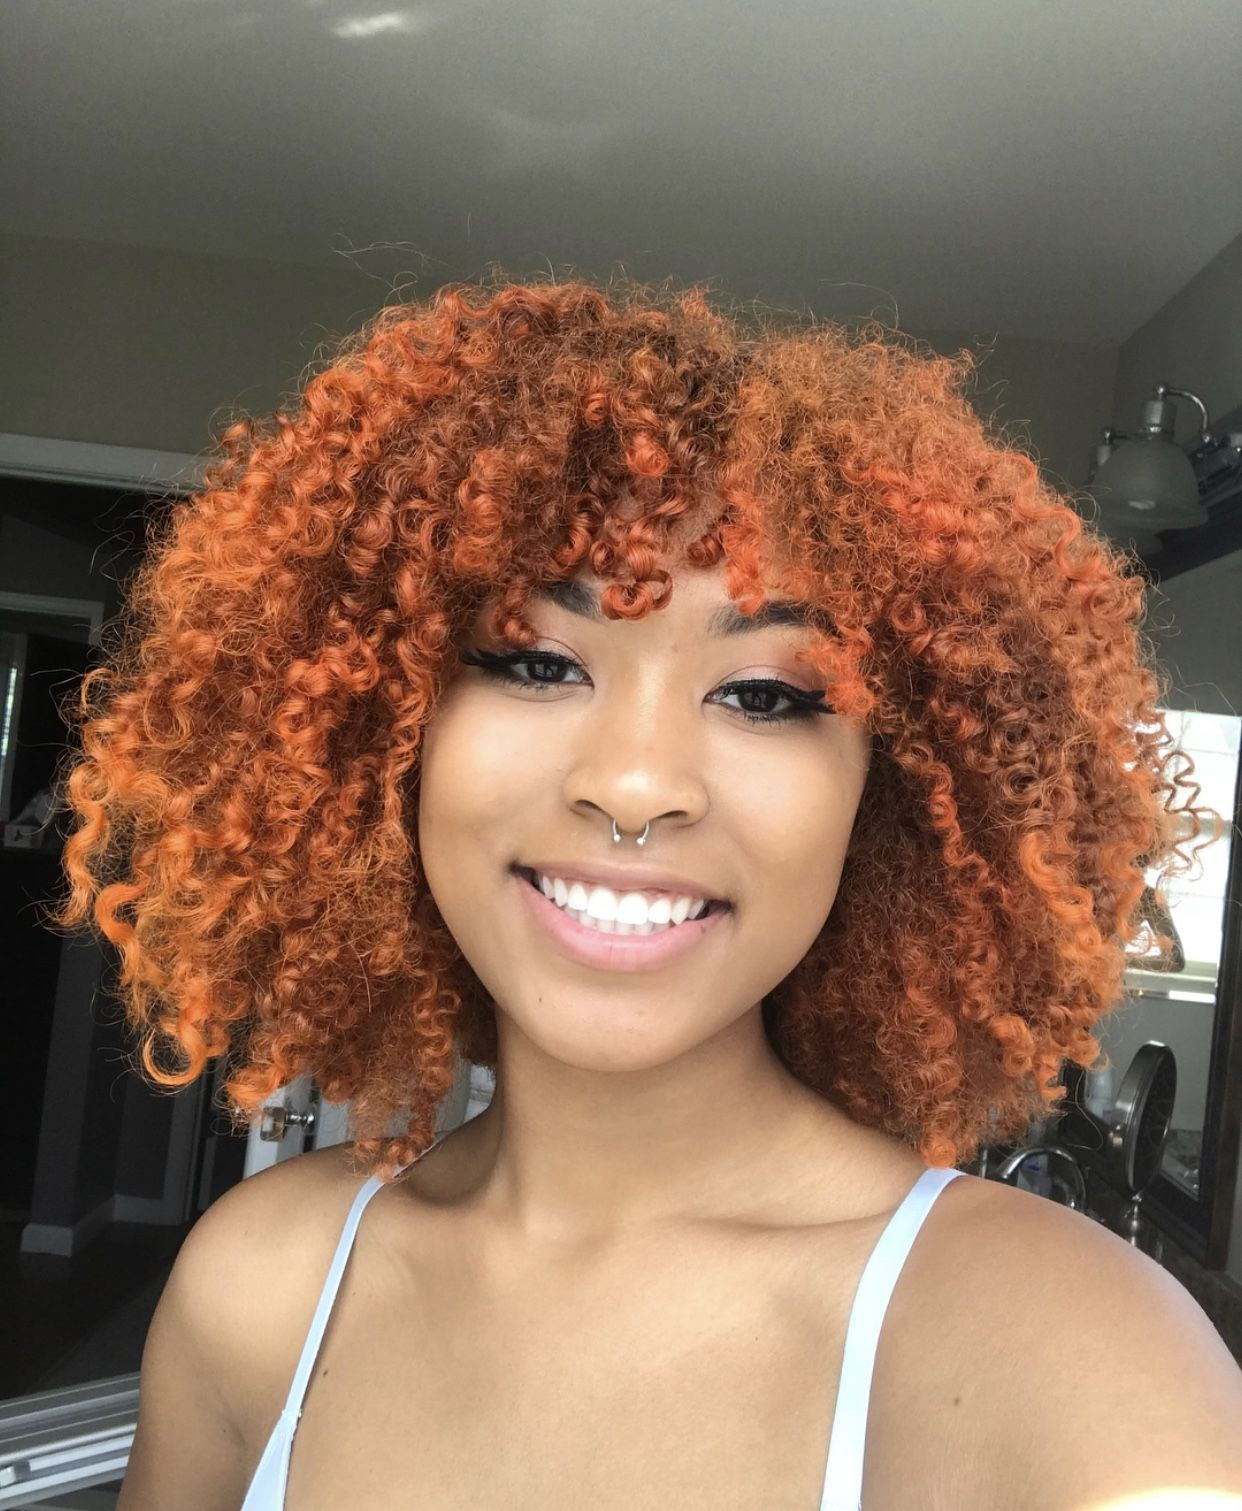 caringfornaturalhair for all things natural hair + care